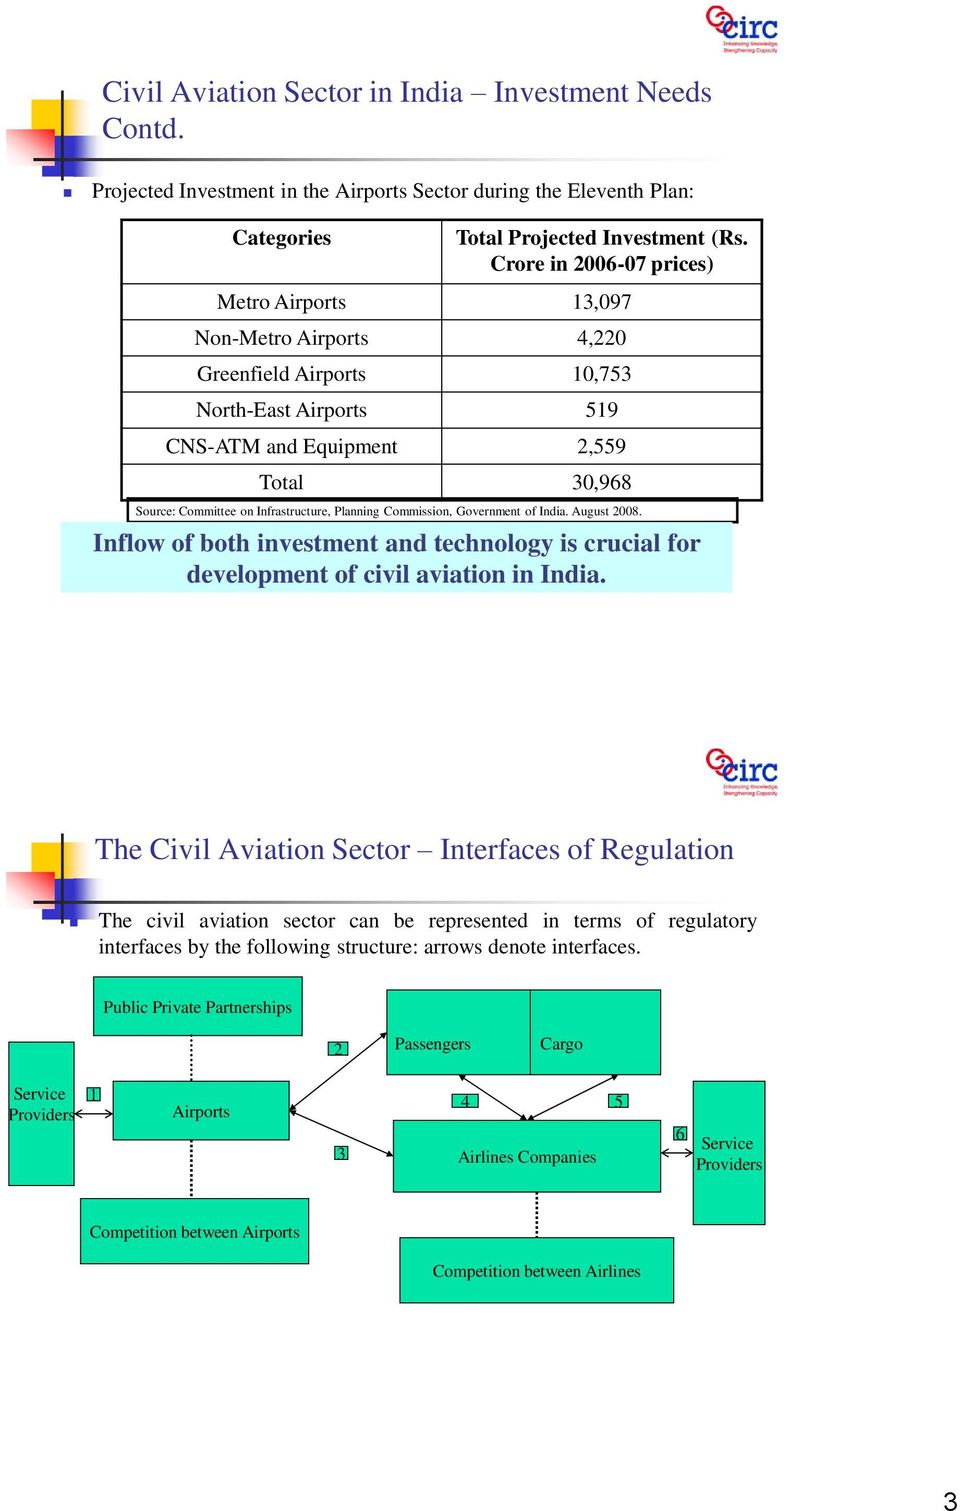 Infrastructure, Planning Commission, Government of India. August 2008. Inflow of both investment and technology is crucial for development of civil aviation in India.